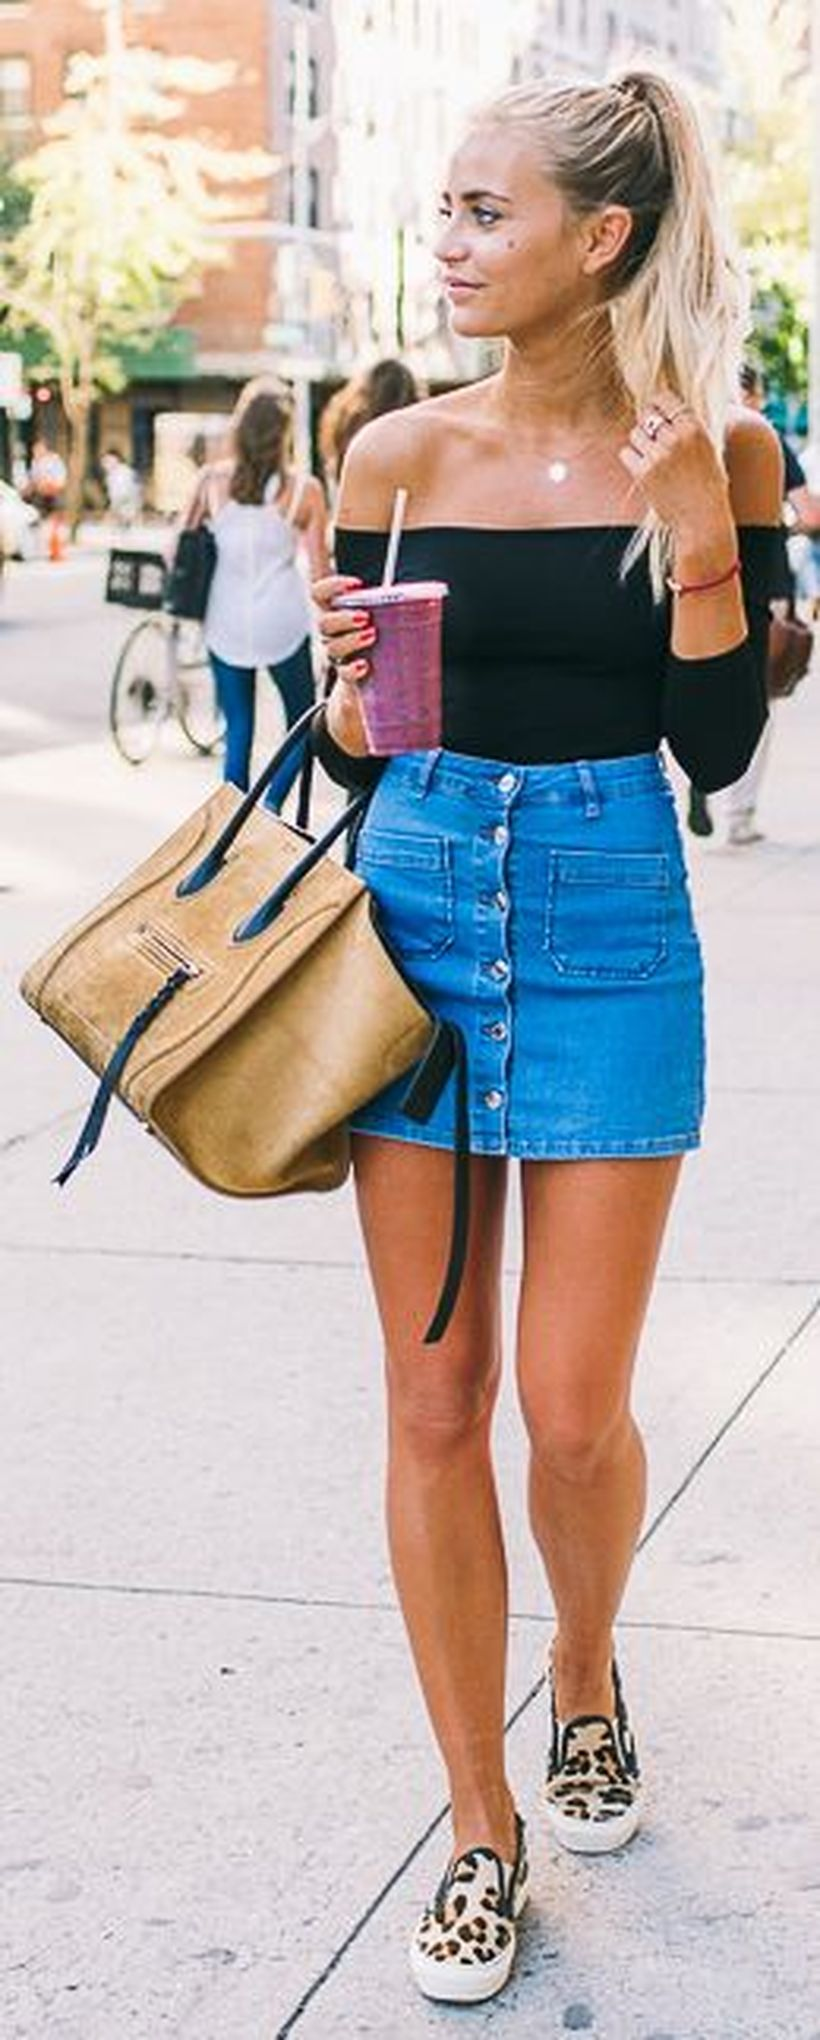 Fashionable skirt outfits ideas that you must try 20